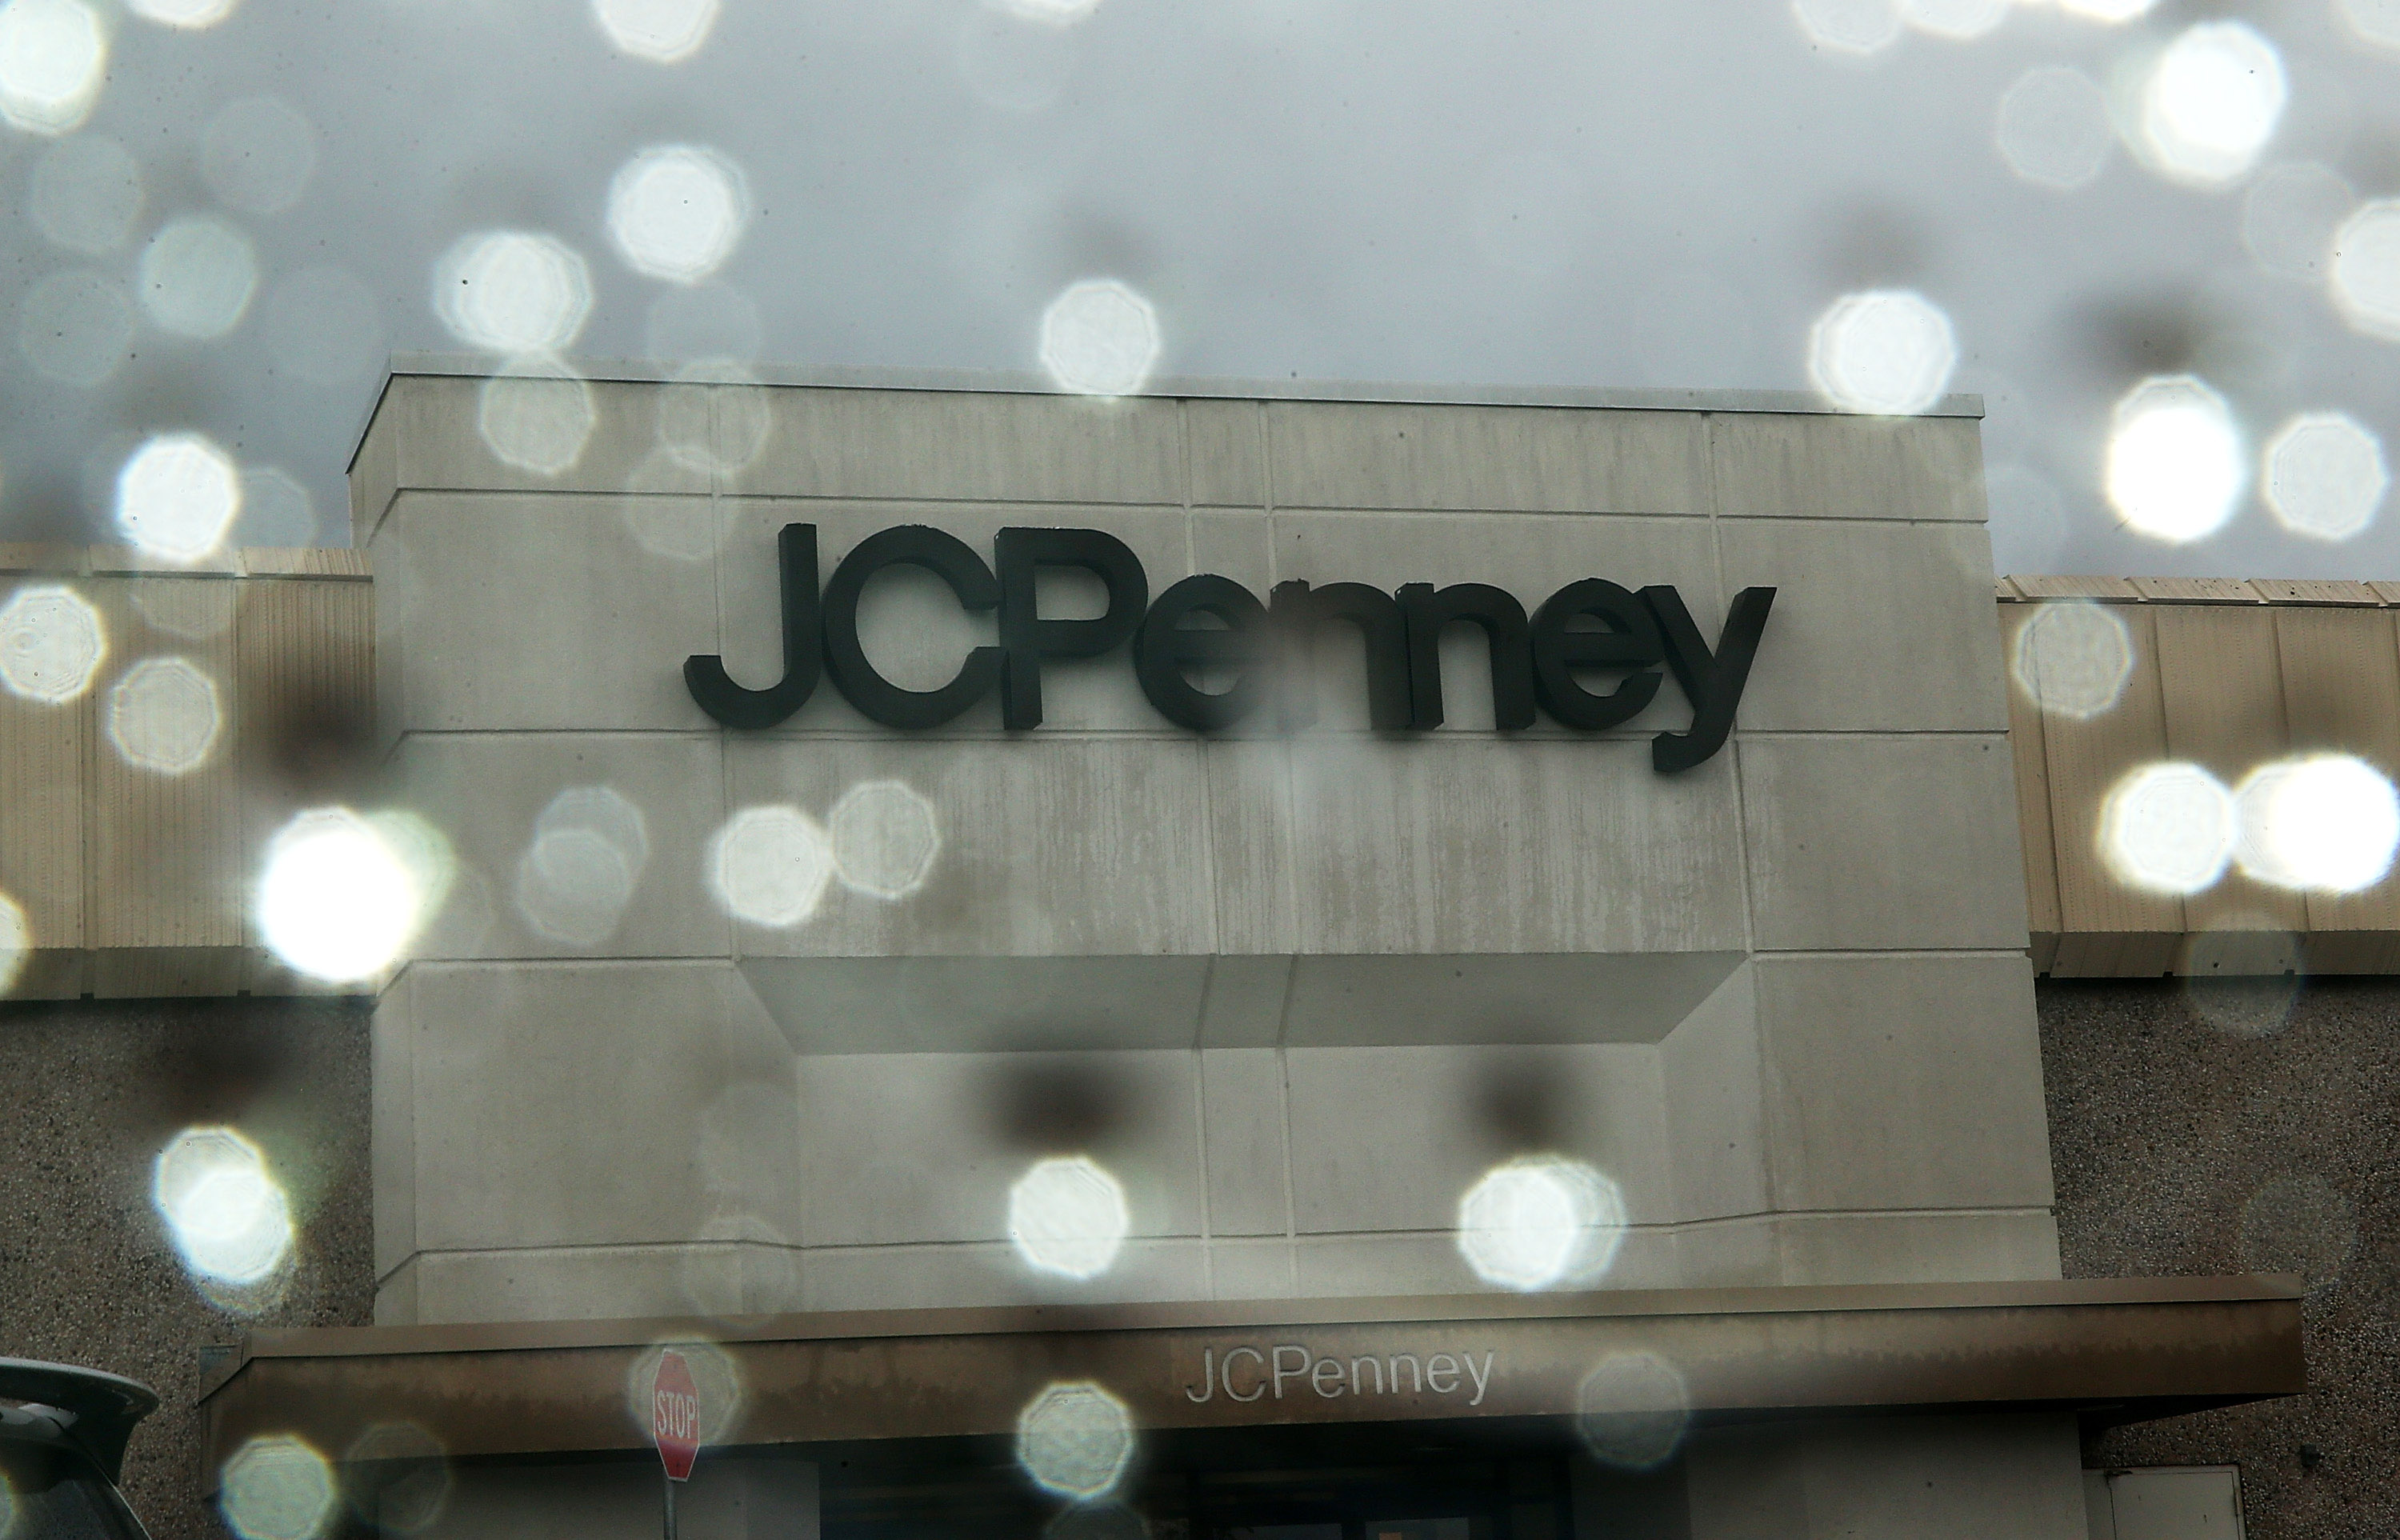 Jcp Stock Quote Jcp*mexico Stock Quote  Jc Penney Co Inc  Bloomberg Markets